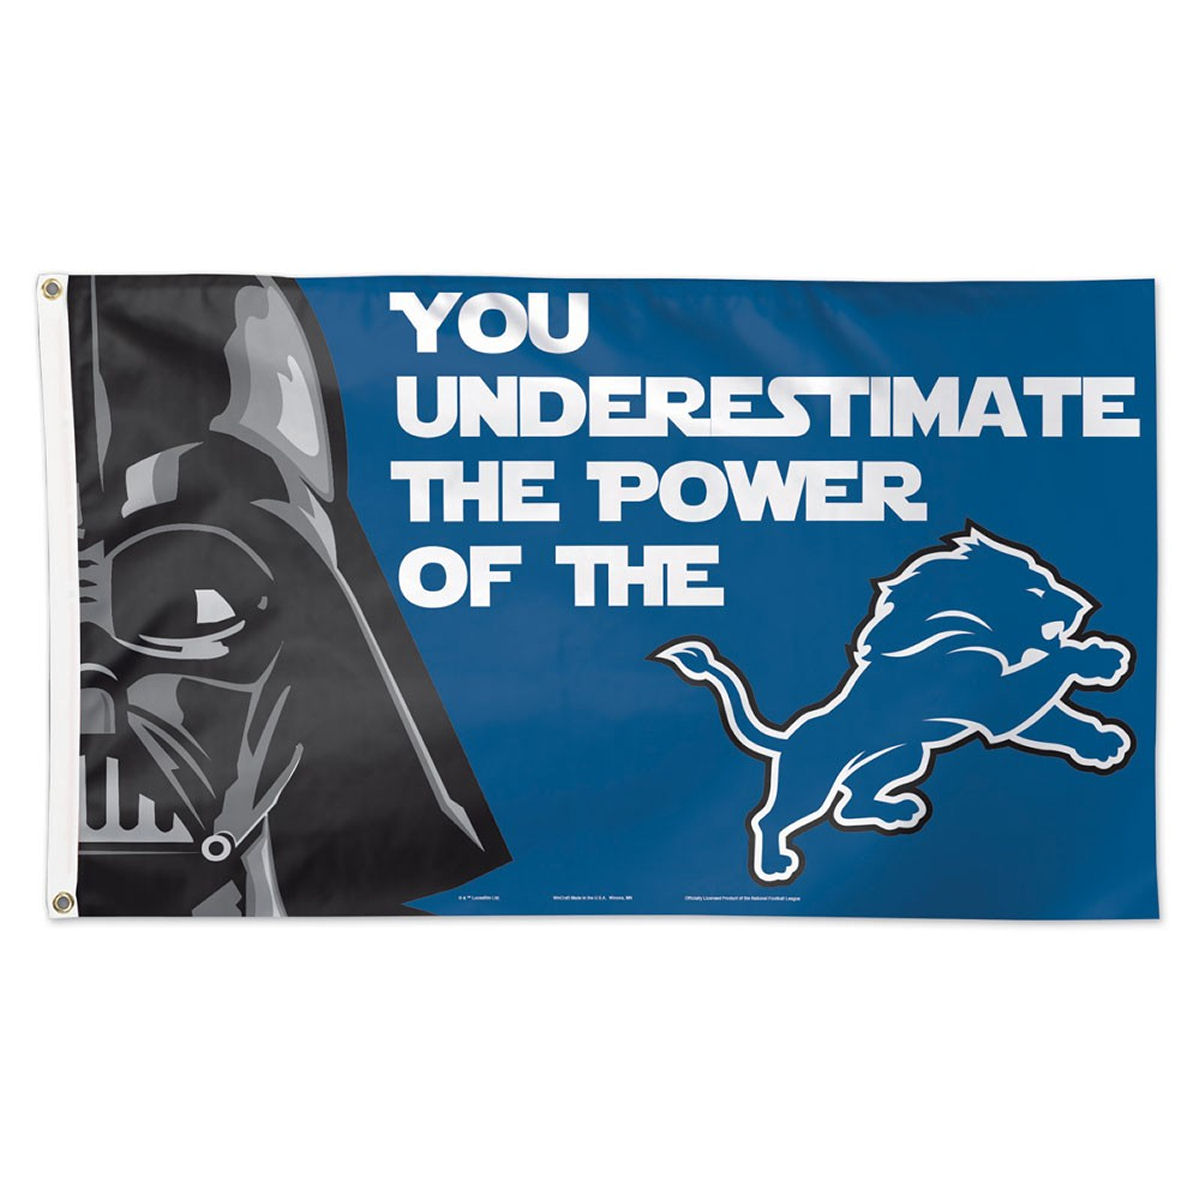 Detroit Lions Official NFL 3' x 5' Star Wars Darth Vader Banner Flag by Wincraft